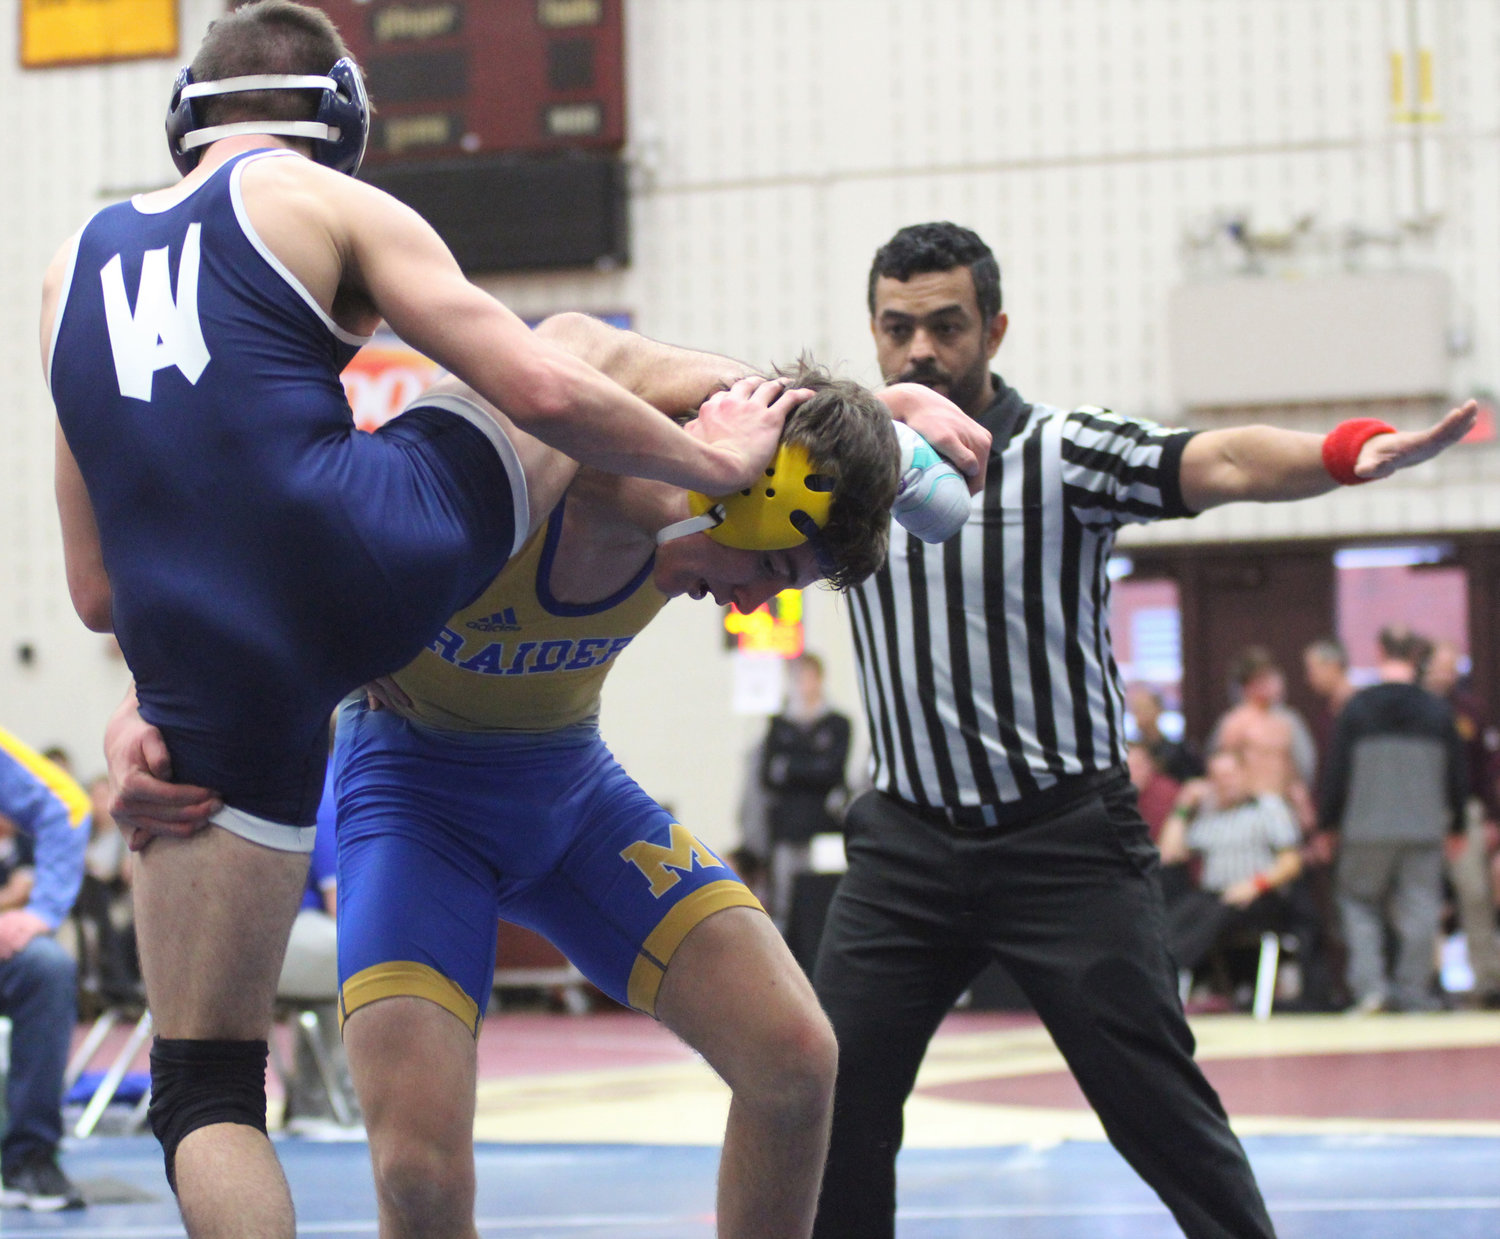 Ryan Berstler lost in overtime to Wyomissing standout Anthony Gust in the Governor Mifflin Holiday Tournament.